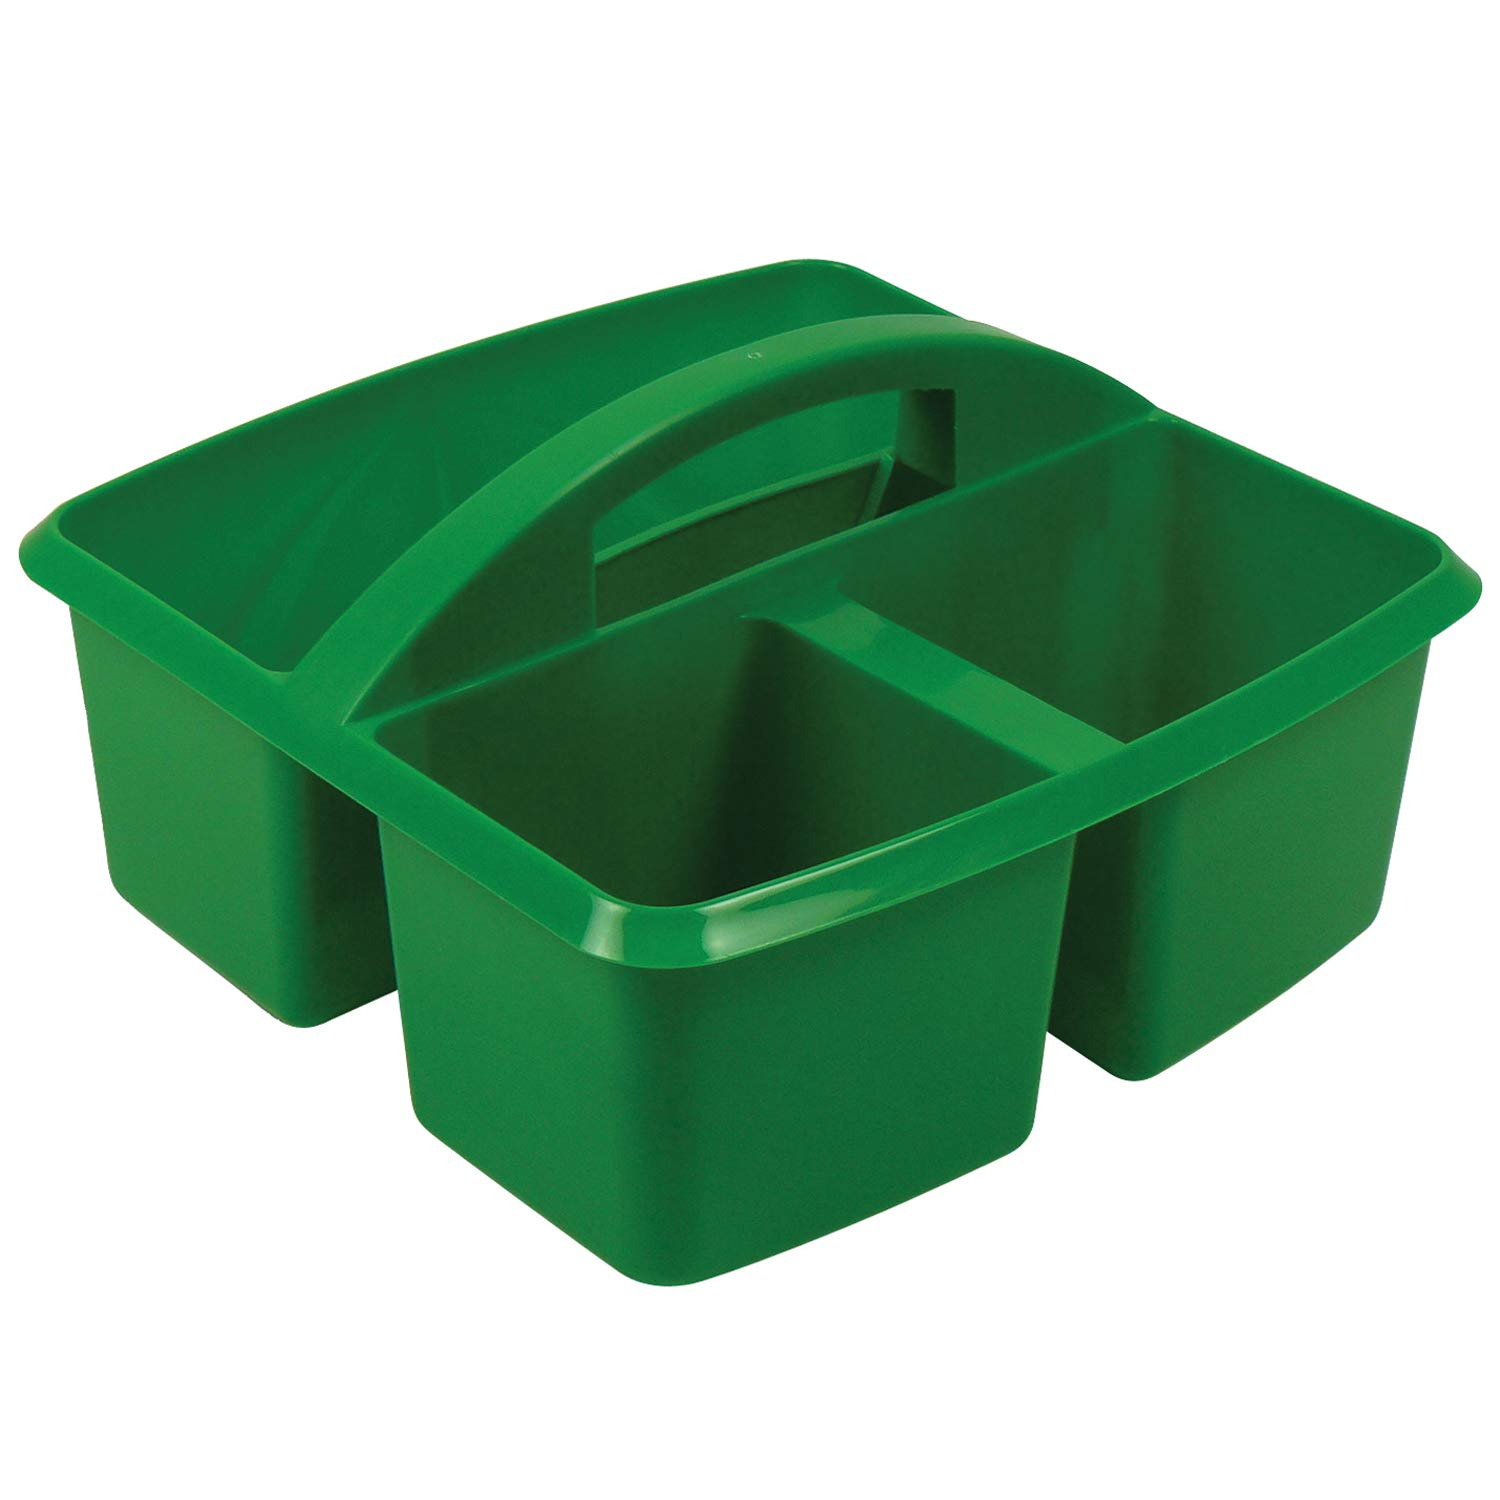 Romanoff Products ROM25905BN Small Utility Caddy, Green, Pack of 6